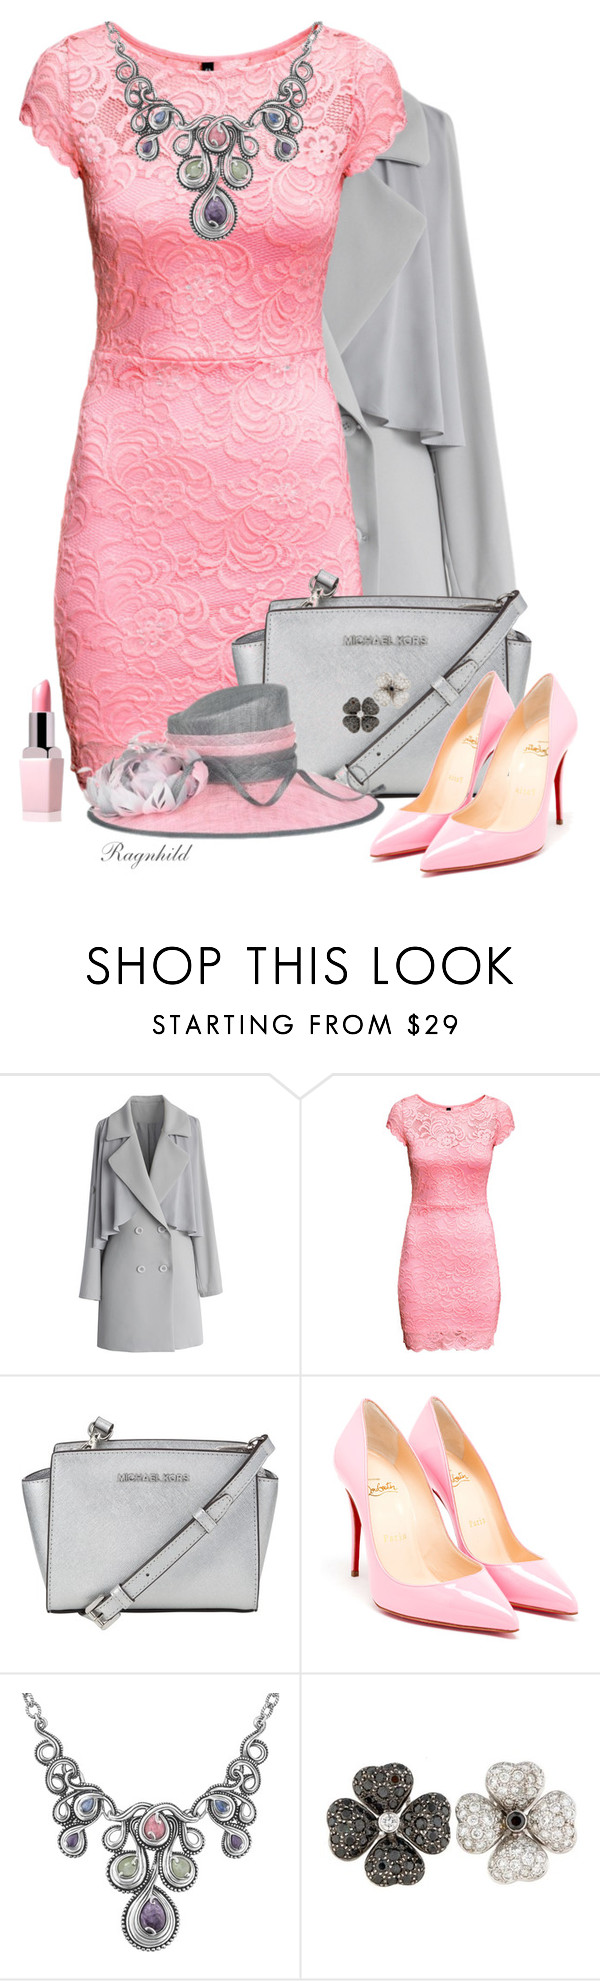 """""""Pink Dress"""" by ragnh-mjos ❤ liked on Polyvore featuring Chicwish, H&M, MICHAEL Michael Kors, Christian Louboutin, Carolyn Pollack/Relios, women's clothing, women, female, woman and misses"""